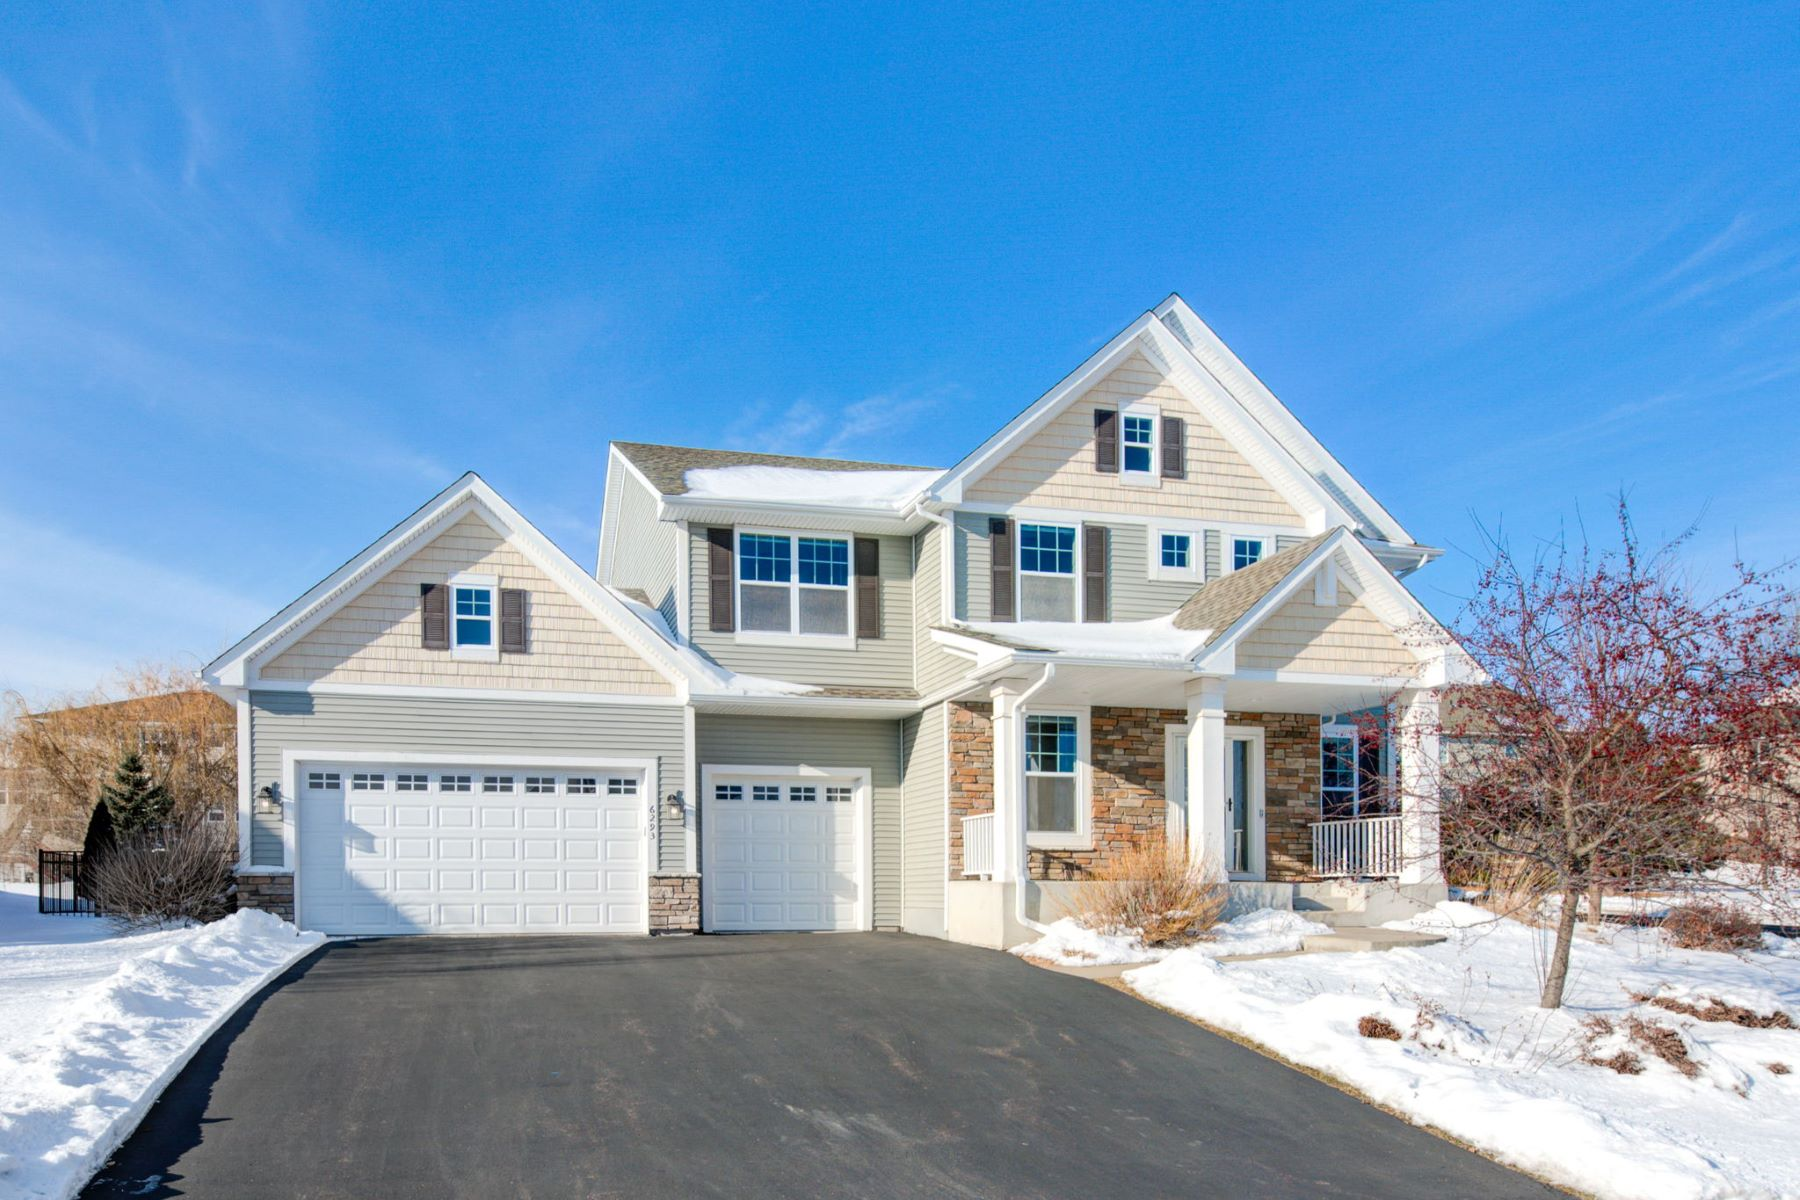 Single Family Homes for Sale at Better Than New! 5 Bedroom Home in Desired Bonaire Neighborhood! 6293 Peony Lane N Maple Grove, Minnesota 55311 United States